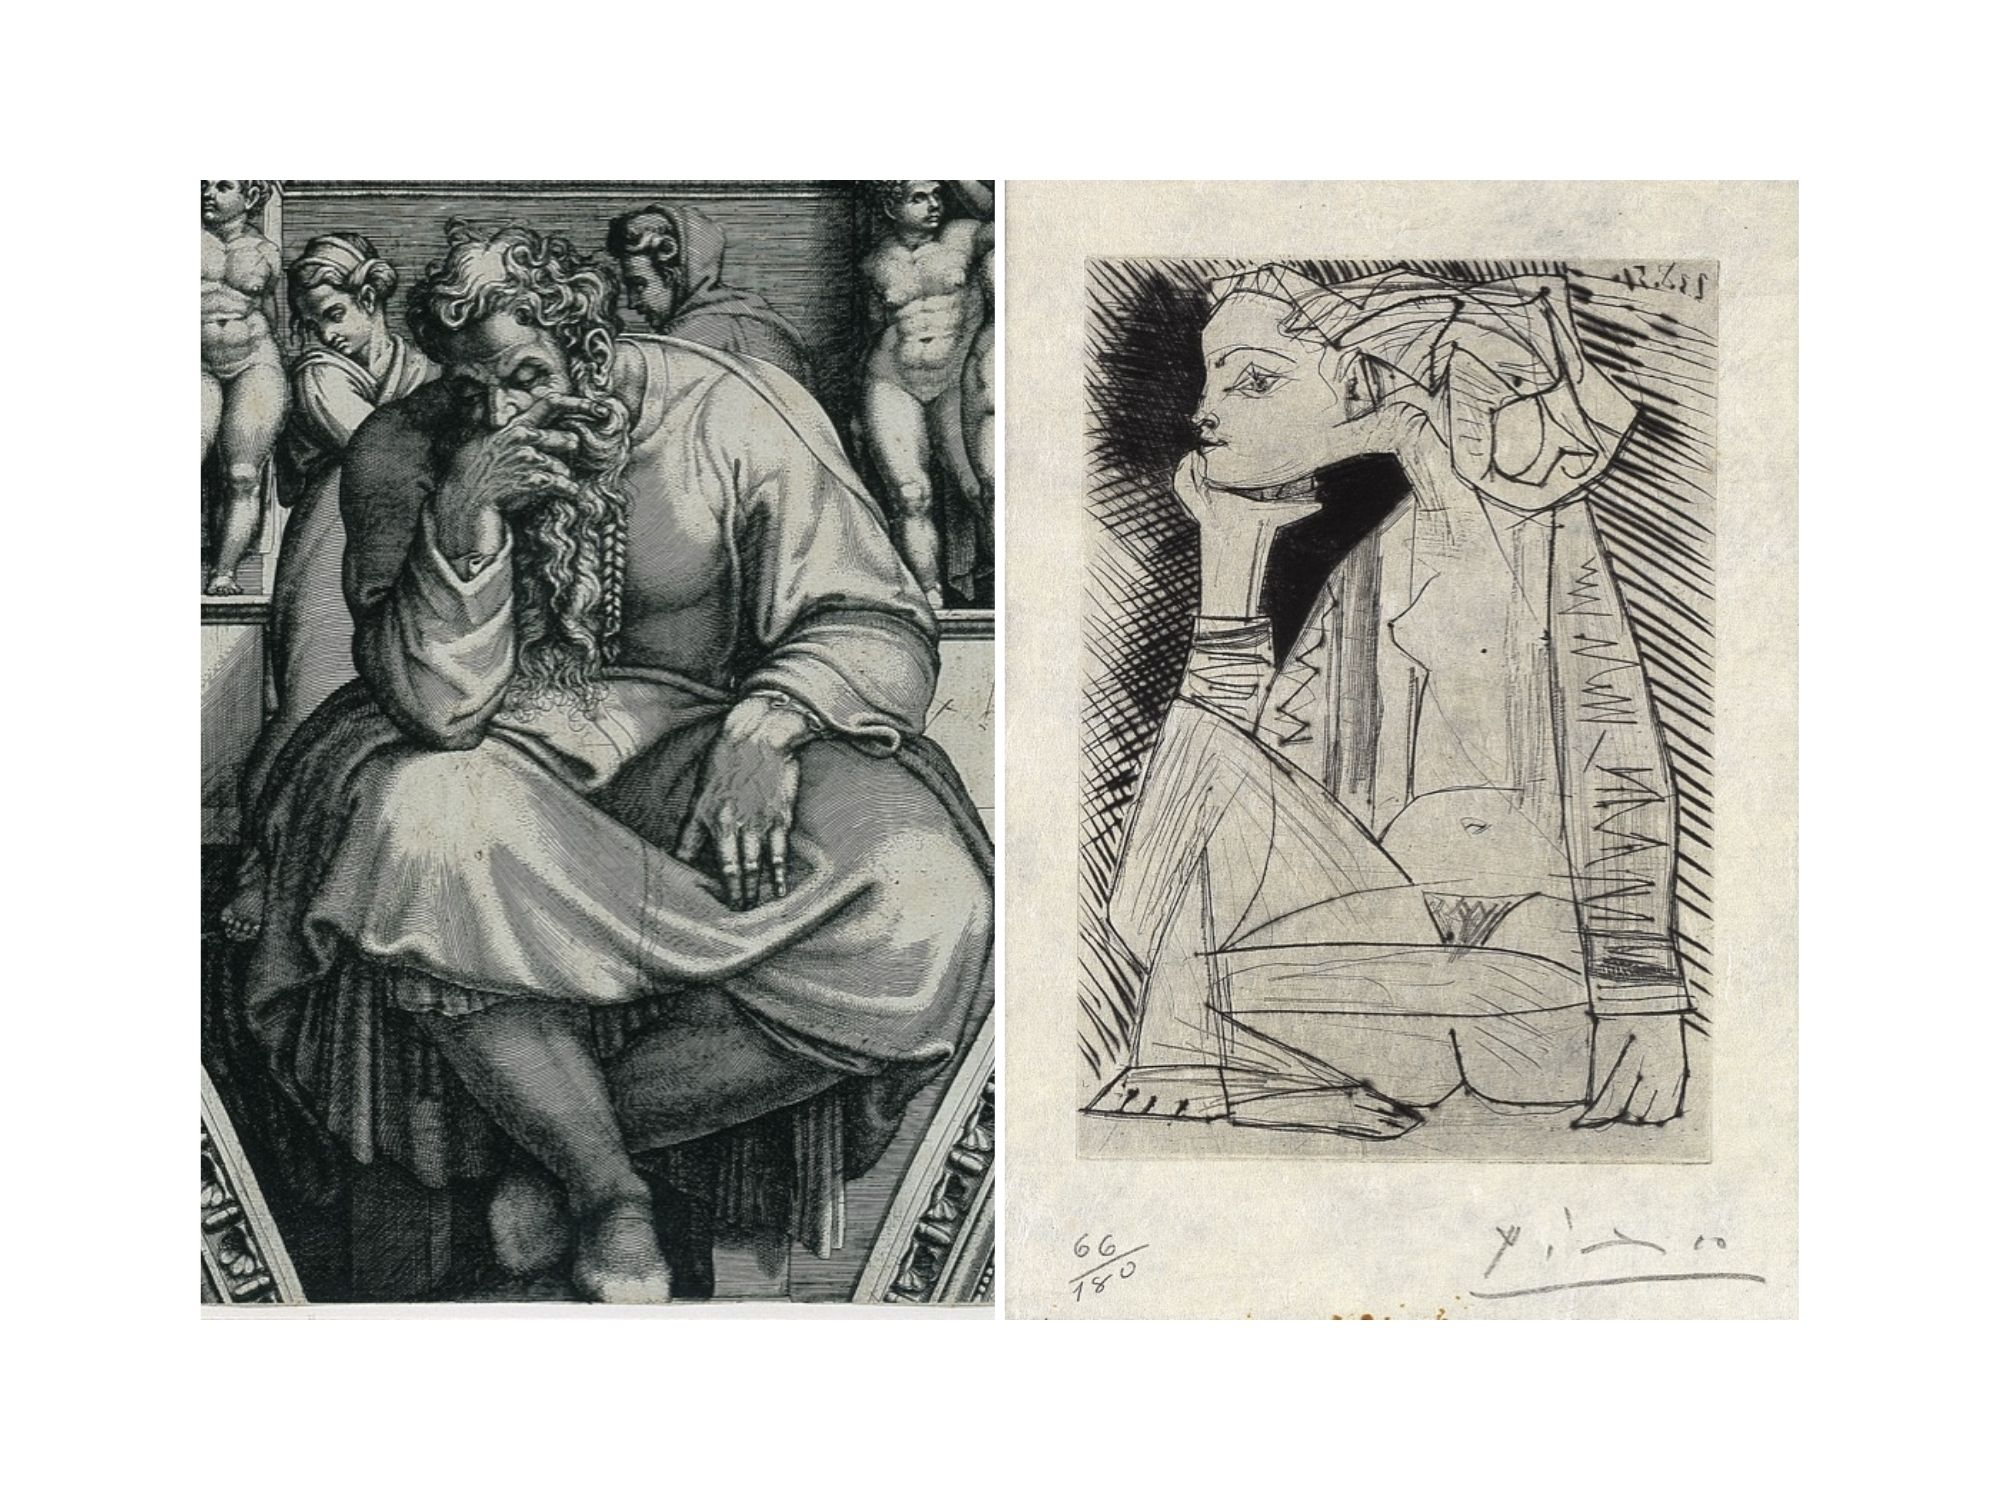 [Left Image] Giorgio Ghisi,The Prophet Jeremiah, after Michelangelo,early 1570s, (detail)11 13/16 x 17in., engraving, Blanton Museum of Art, The University of Texas at Austin, The Leo Steinberg Collection, 2002 [Right Image] Pablo Picasso,Seated Girl, front is piece to Recordant el Doctor Reventós, 1951, (detail), engraving and drypoint, 11 7/16 x 9 1/16in., Blanton Museum of Art, The University of Texas at Austin, The Leo Steinberg Collection, 2002